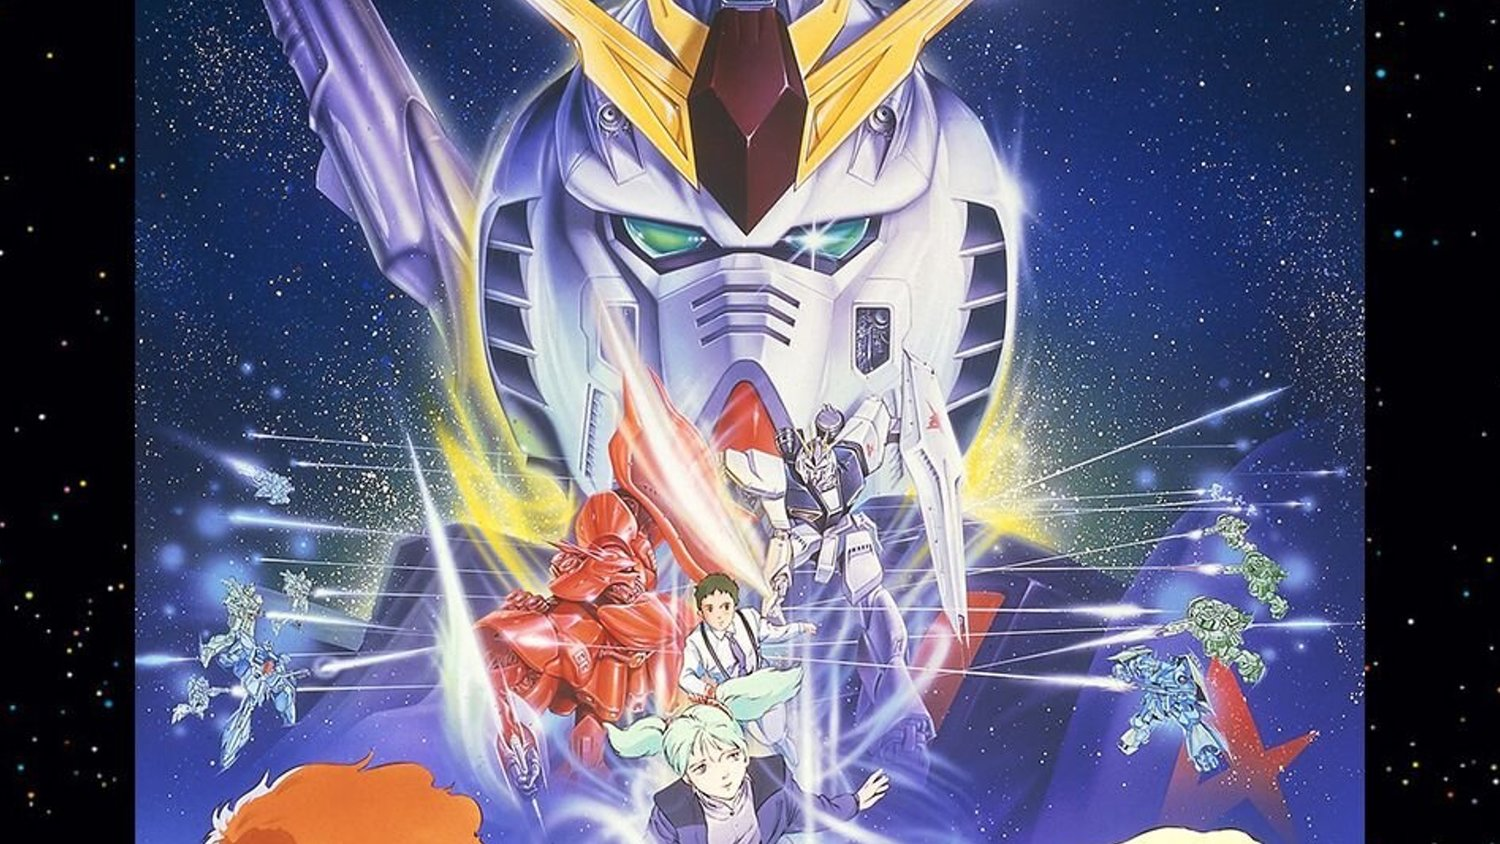 2020 Japanese Film Hathaway/'s Flash Promotional Poster Mobile Suit Gundam